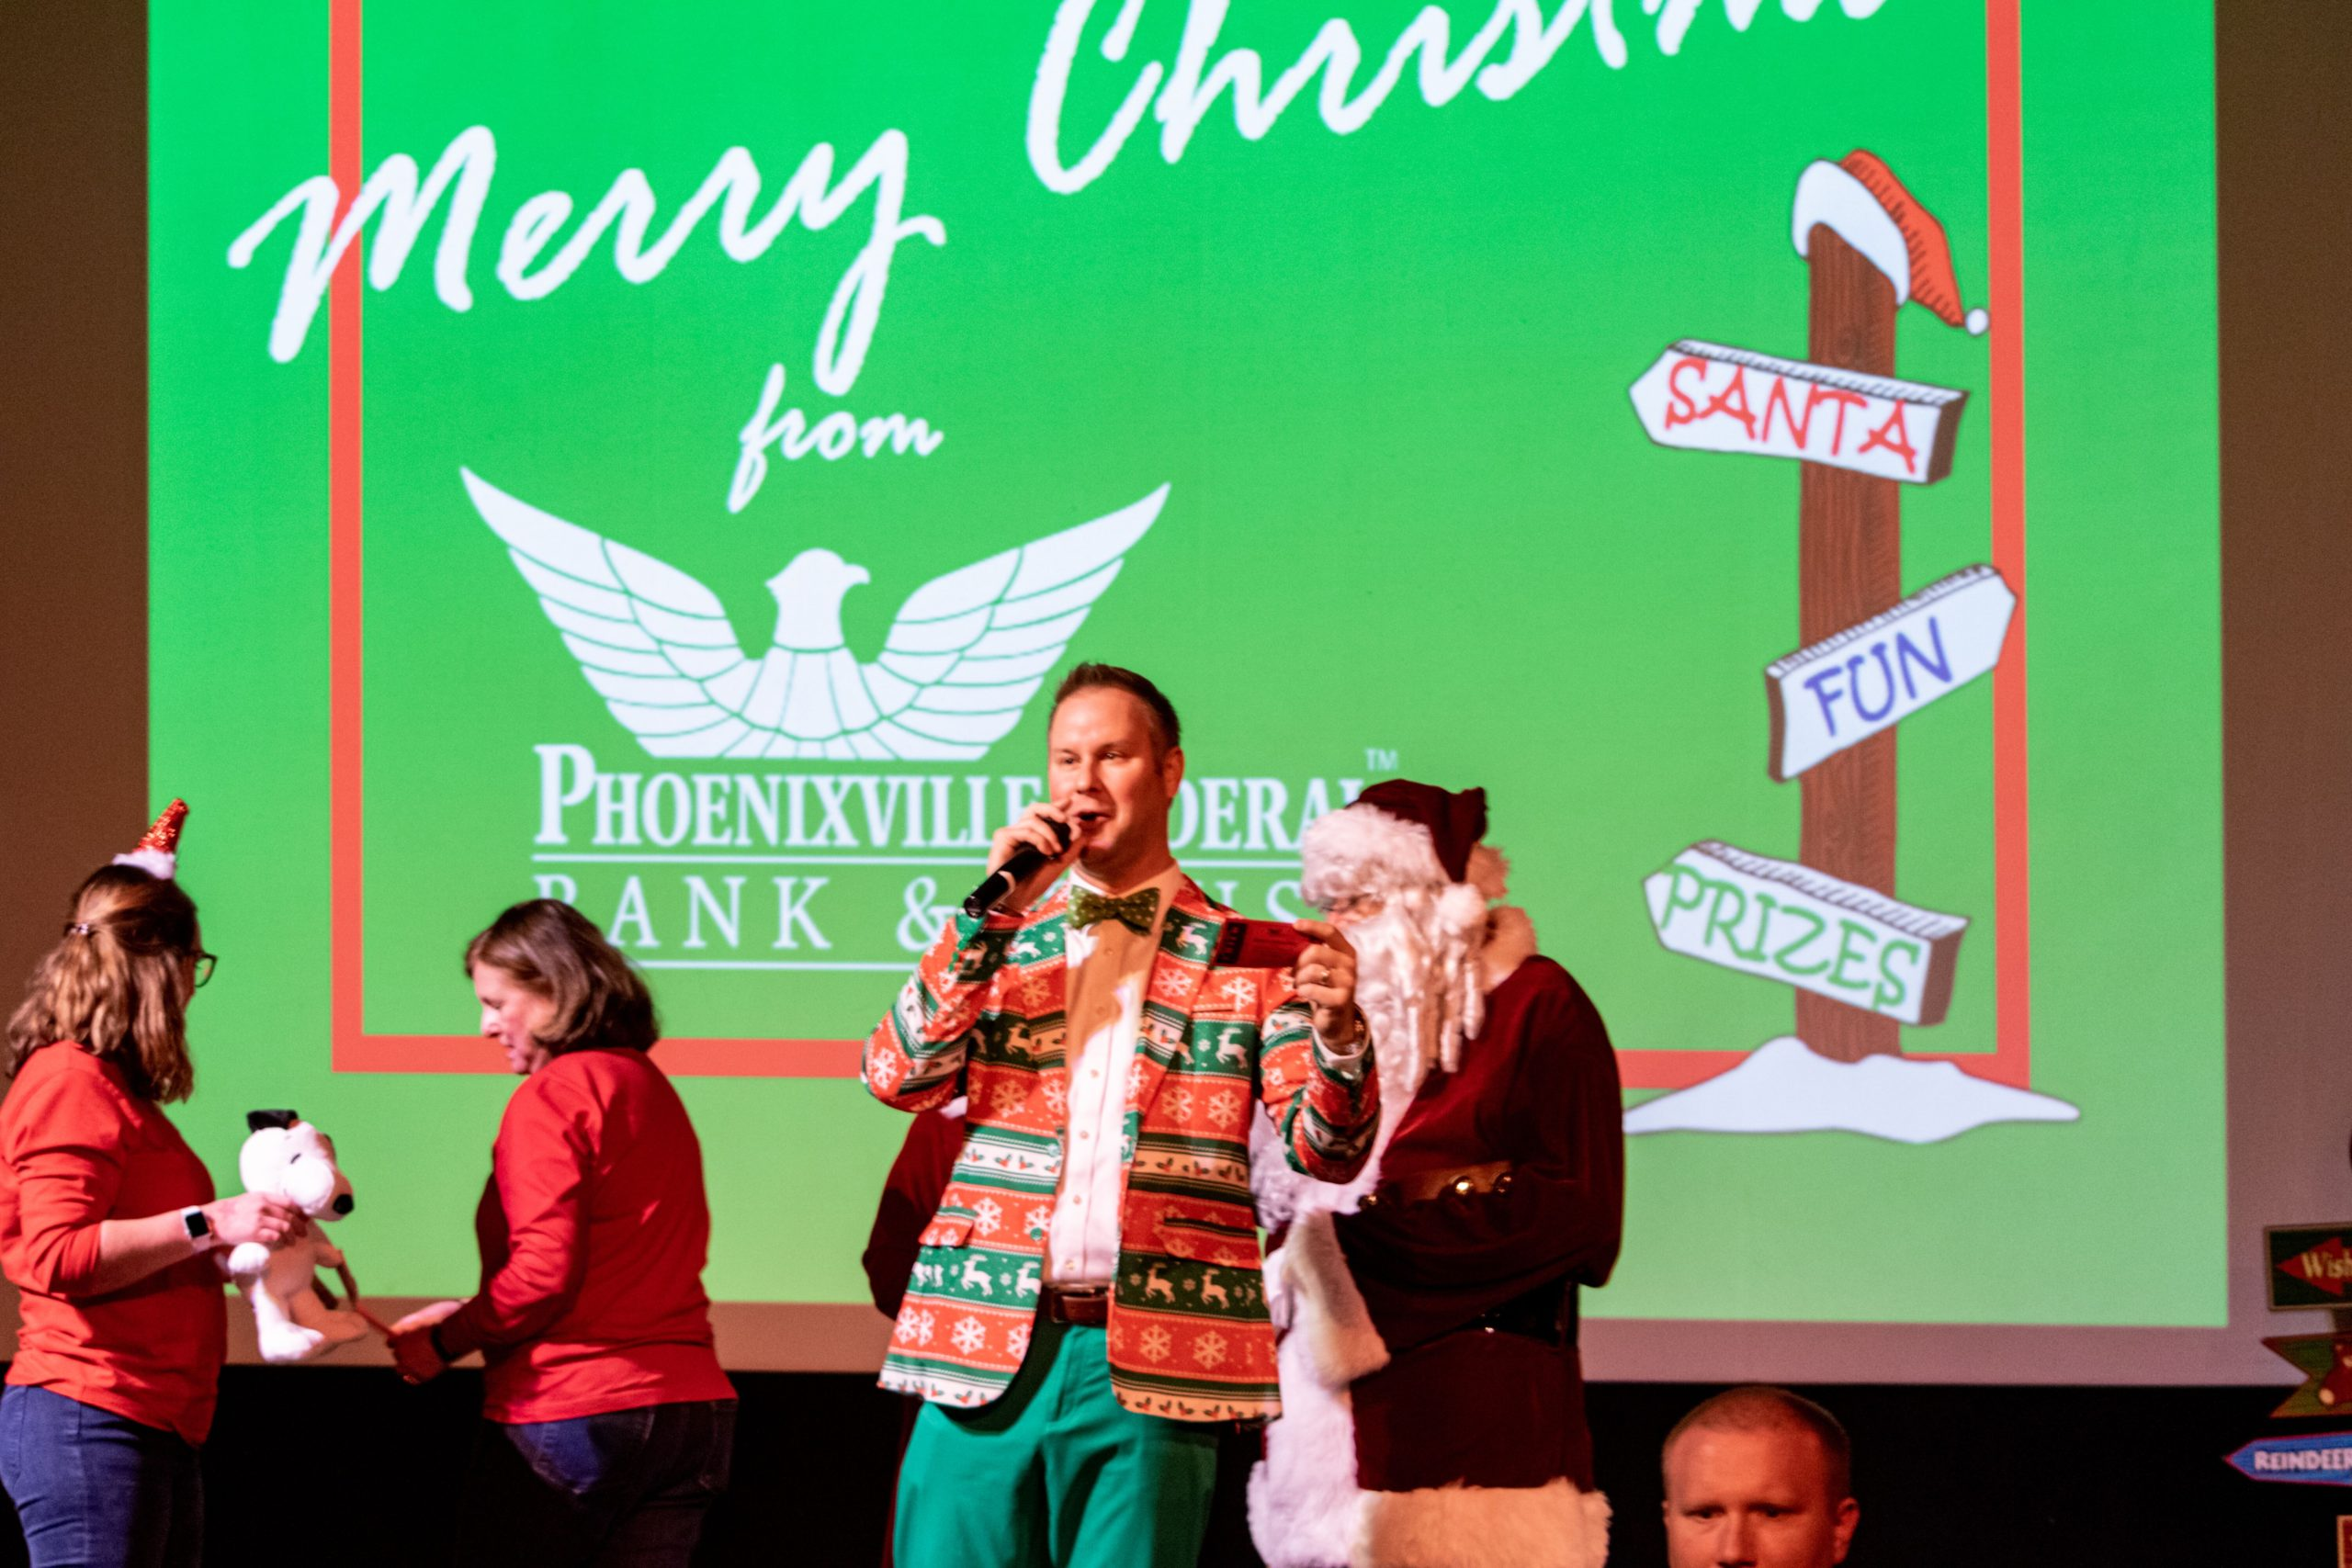 Phoenixville Federal Bank & Trust Ushers in Holiday Season with Annual Children's Christmas Party